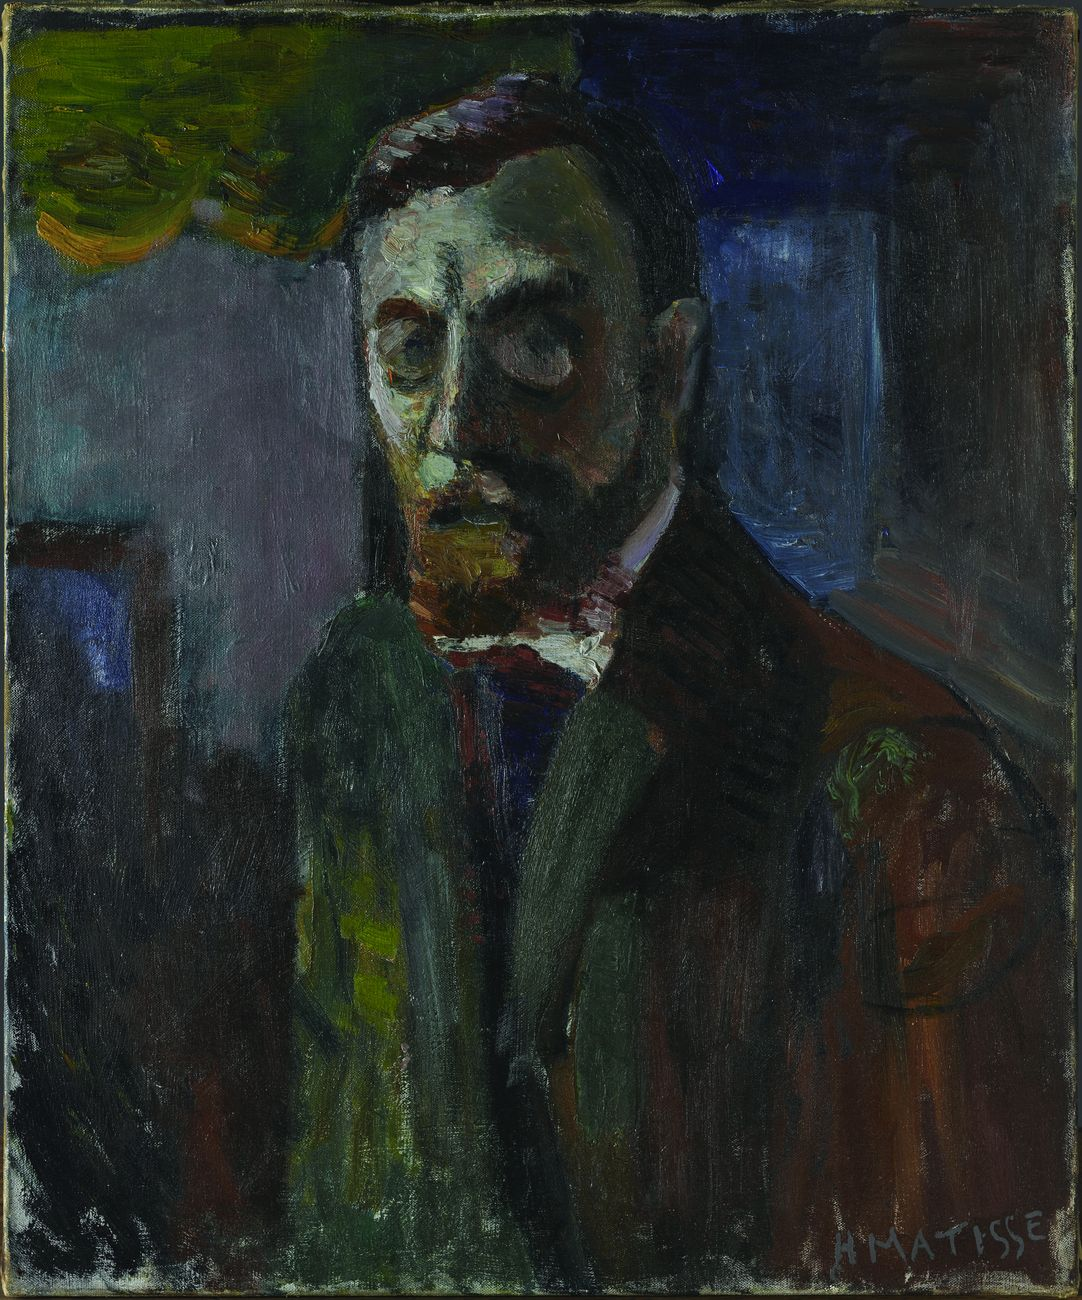 Henri Matisse, Autoportrait, 1900. Centre Pompidou, Musée national d'art moderne Centre de création industrielle © Photo RMN © Succession H. Matisse